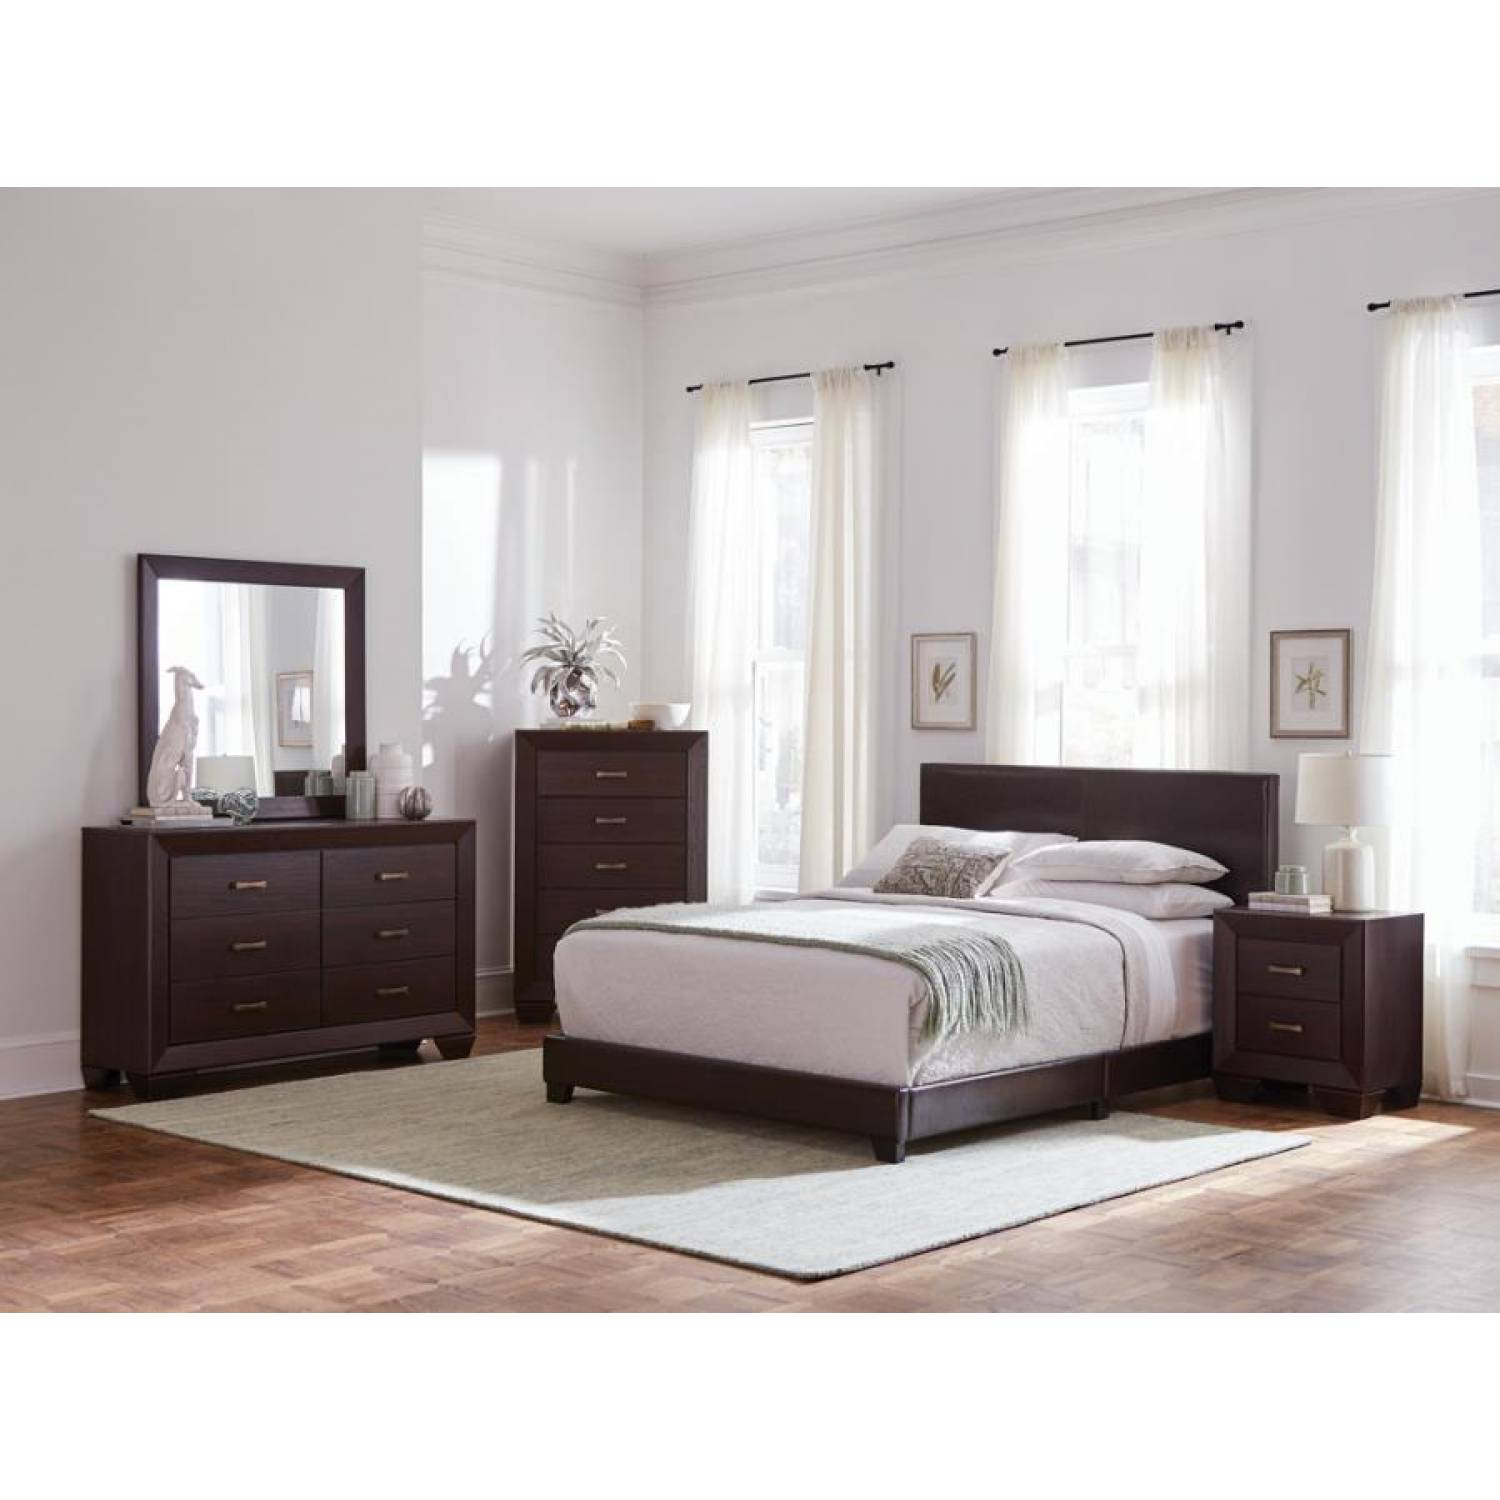 300762kw S4 4pc Sets Cal King Bed Dresser Mirror Nightstand